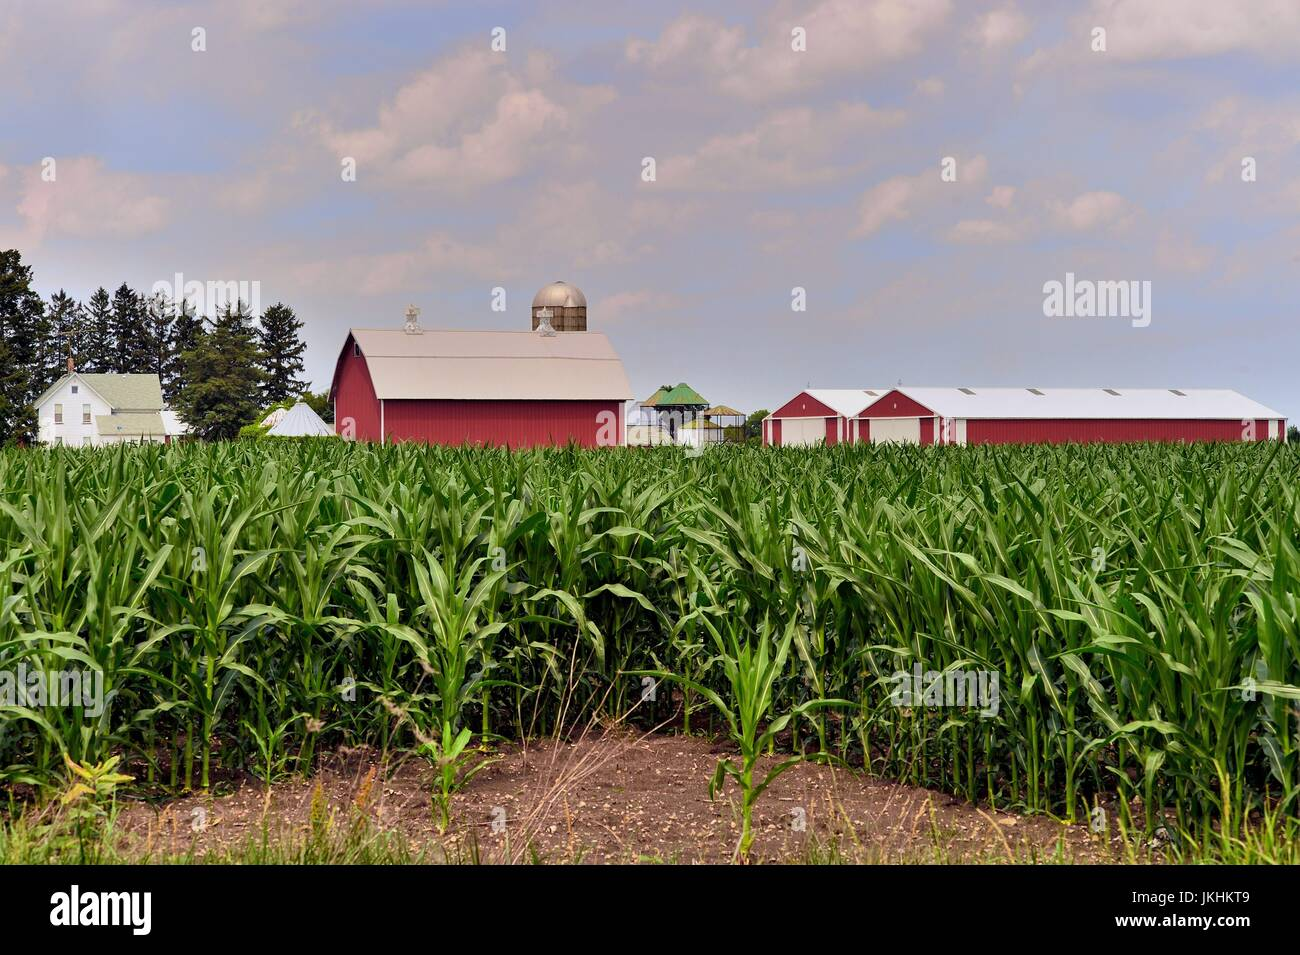 A corn crop on an Illinois farm begins to obscure a farmohouse, barn, silos and other buildings. South Elgin, Illinois, - Stock Image